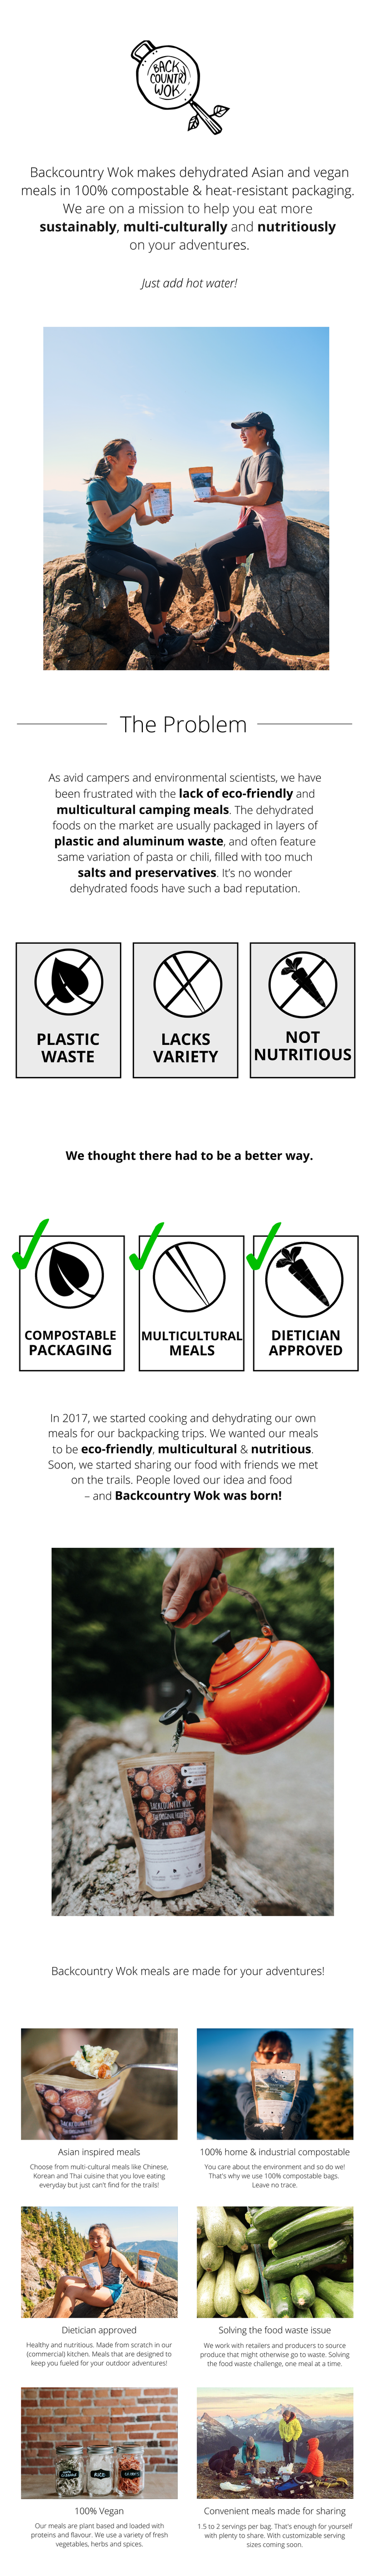 Dehydrated Asian and vegan meals in 100% compostable bags by